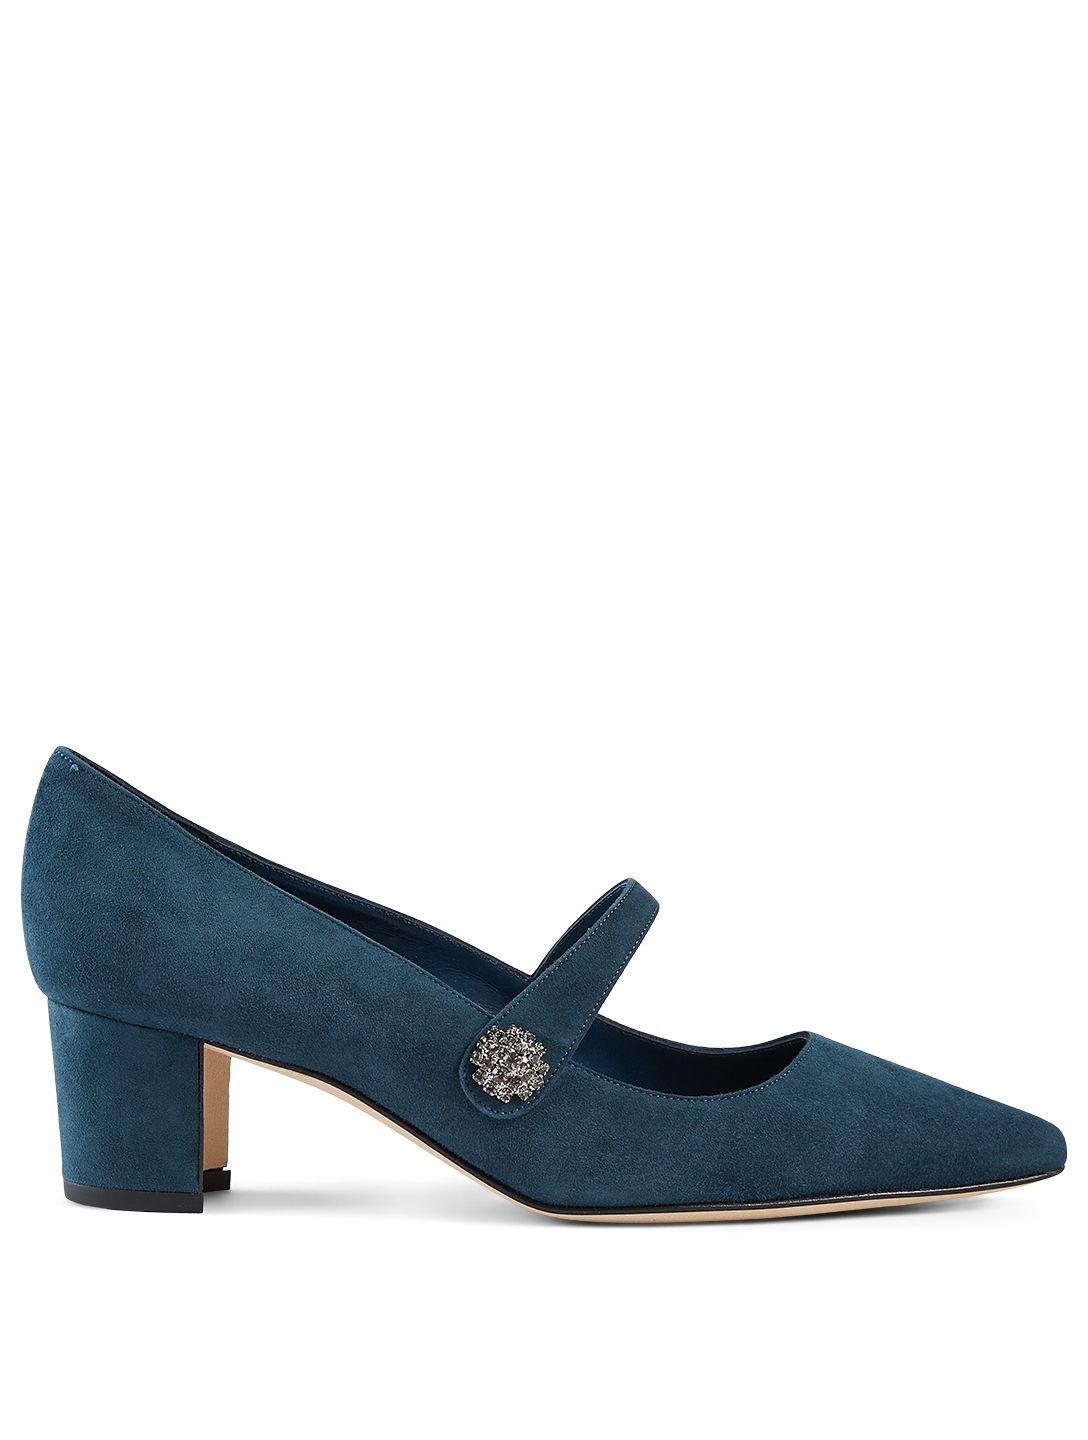 MANOLO BLAHNIK Sajada Suede Mary Jane Pumps Women's Blue